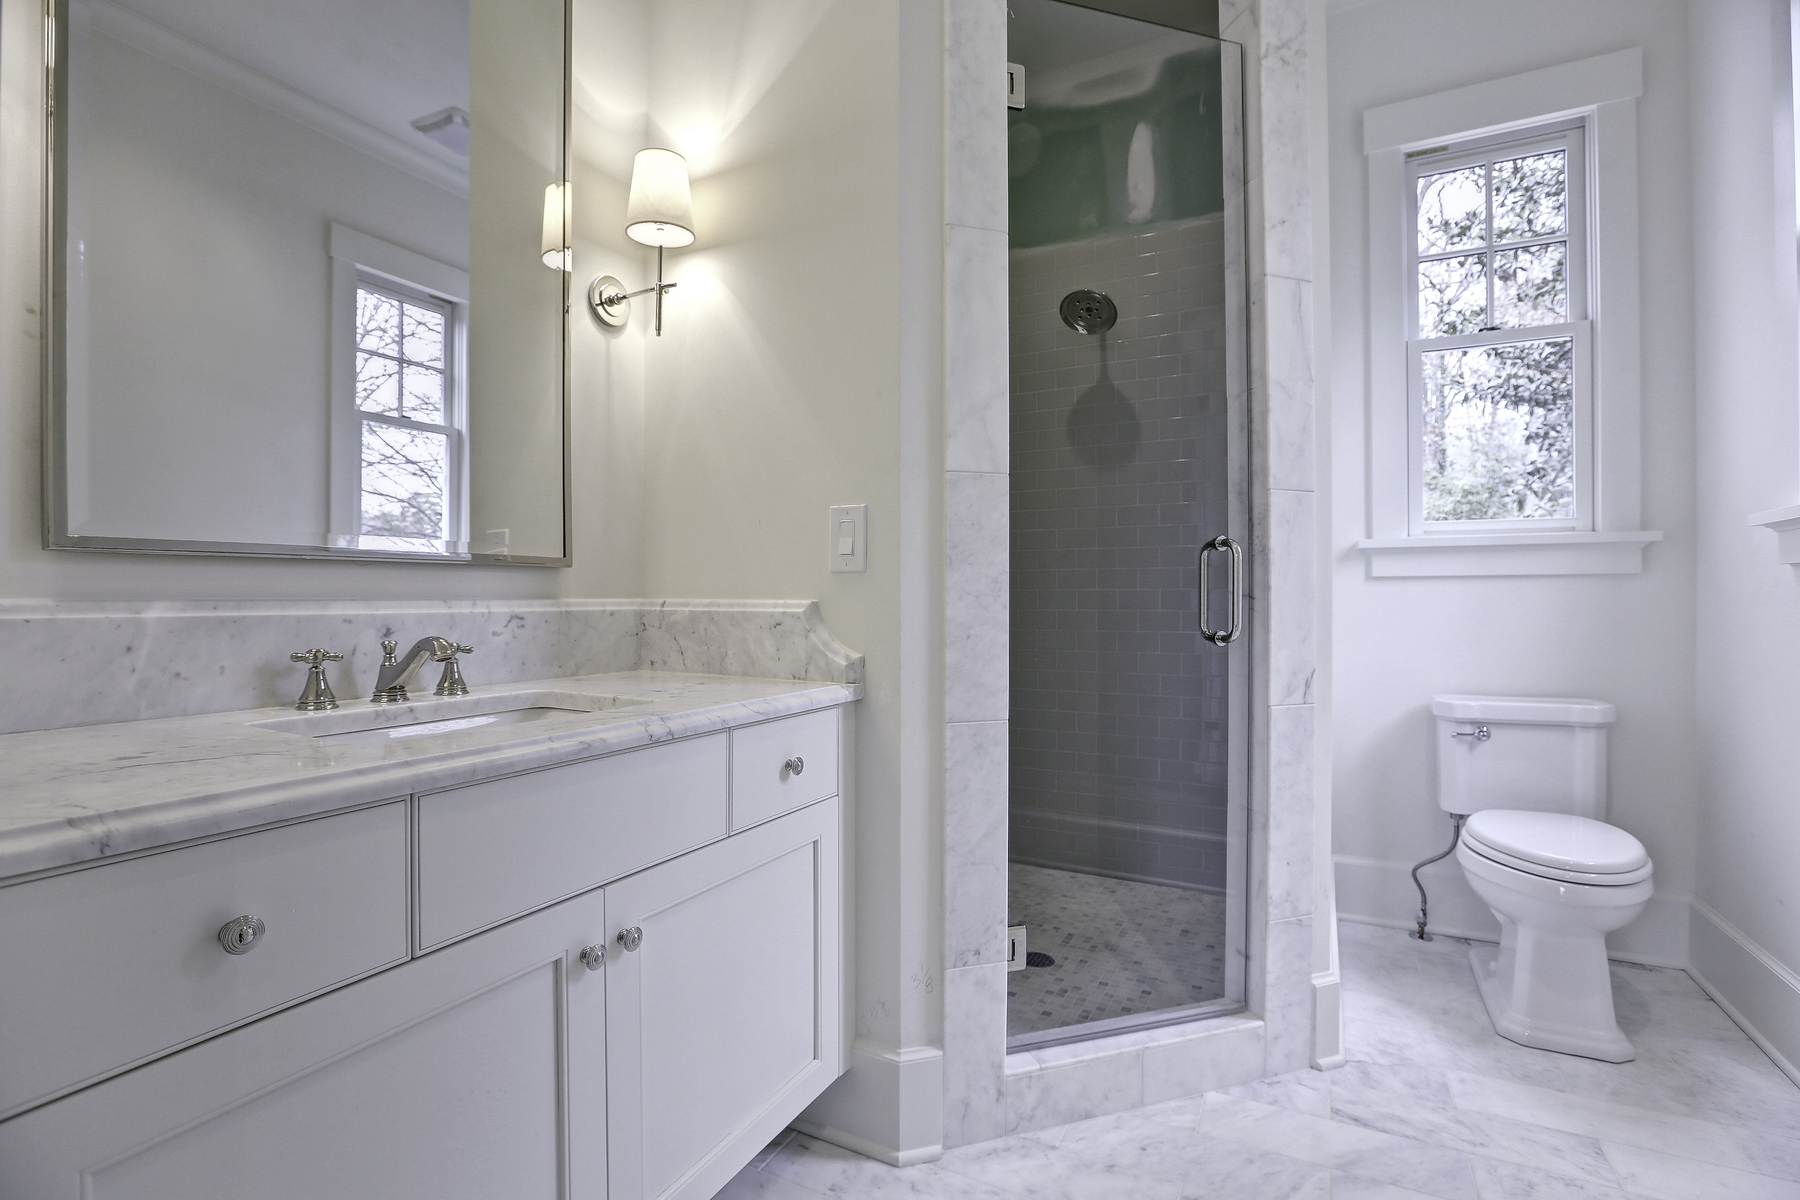 Additional photo for property listing at Deluxe Custom New Construction by Jackbilt Homes on Sought-After Street 479 Argonne Drive NW Atlanta, Georgia 30305 Stati Uniti